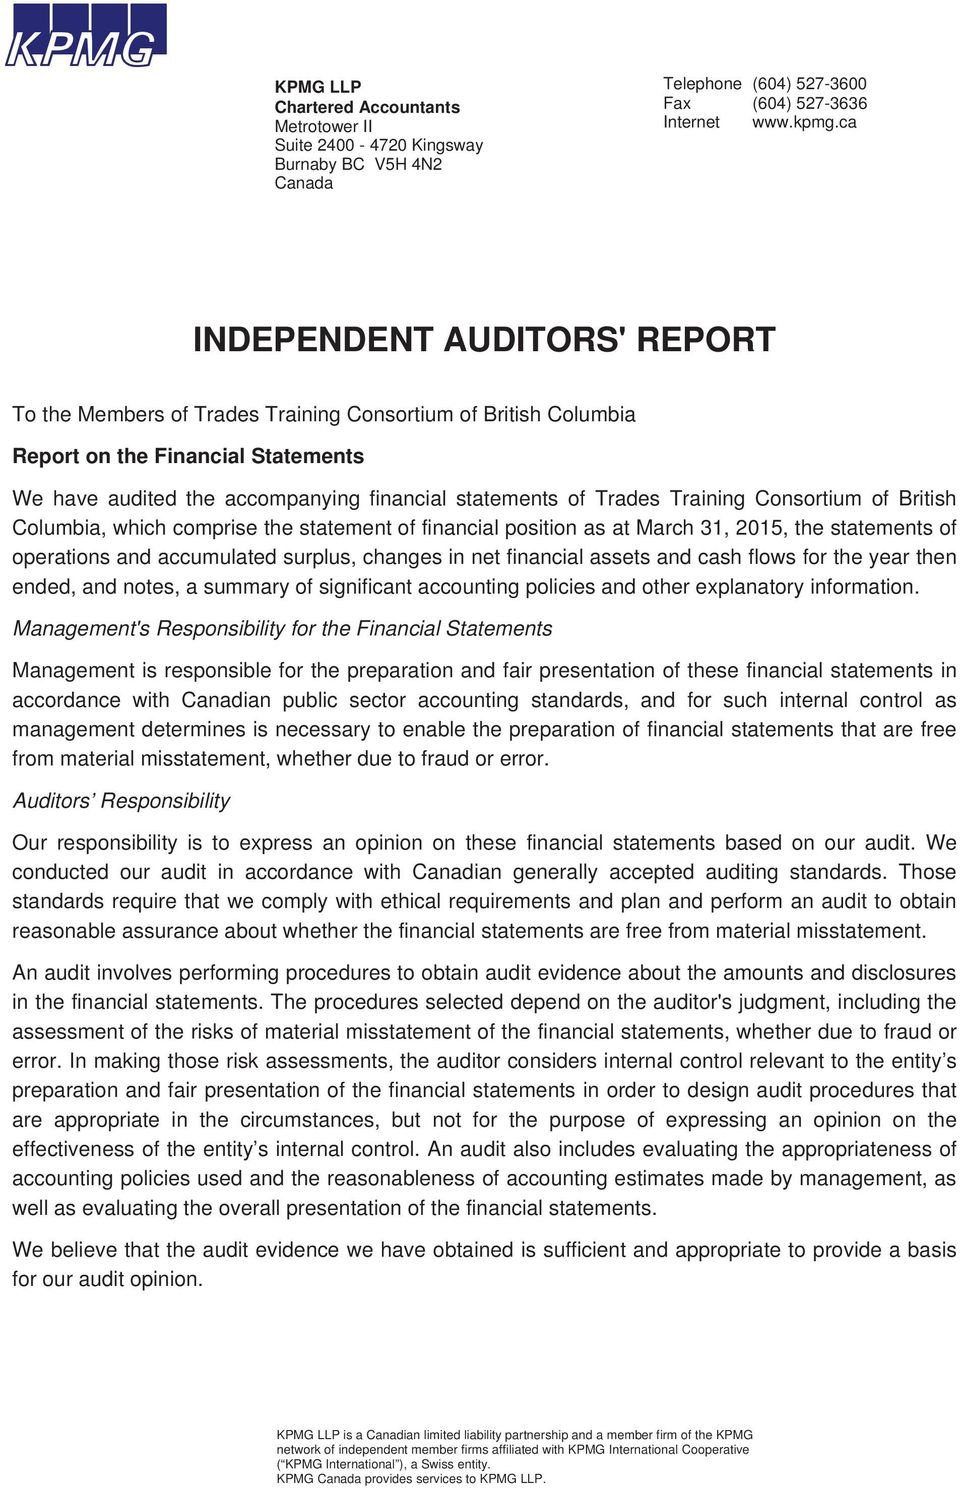 Training Consortium of British Columbia, which comprise the statement of financial position as at March 31, 2015, the statements of operations and accumulated surplus, changes in net financial assets